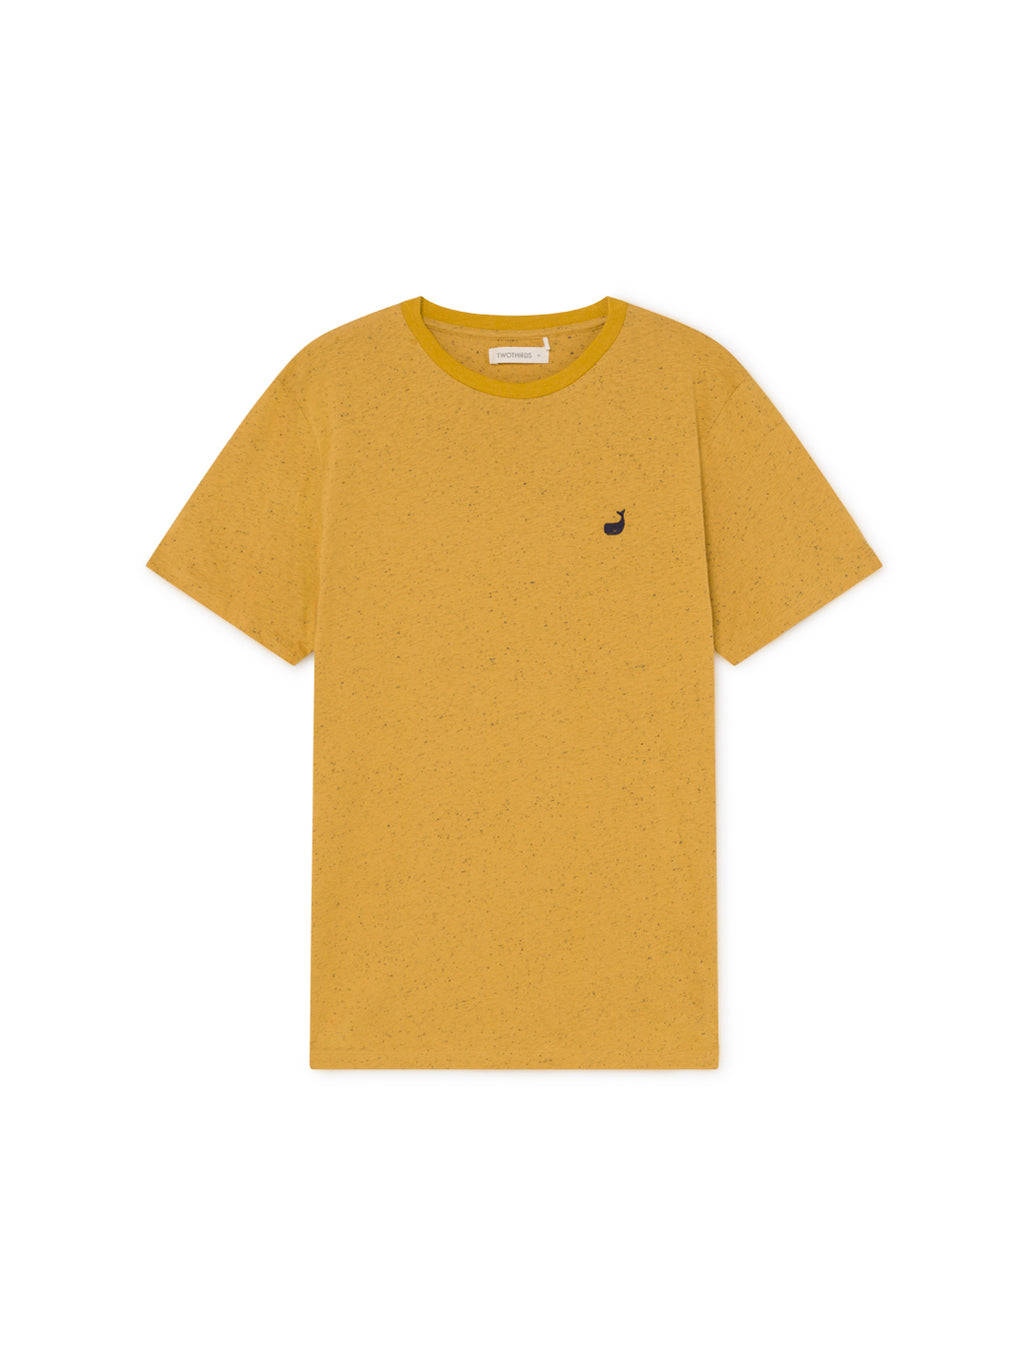 TWOTHIRDS Mens Tee: Ipun - Honey front